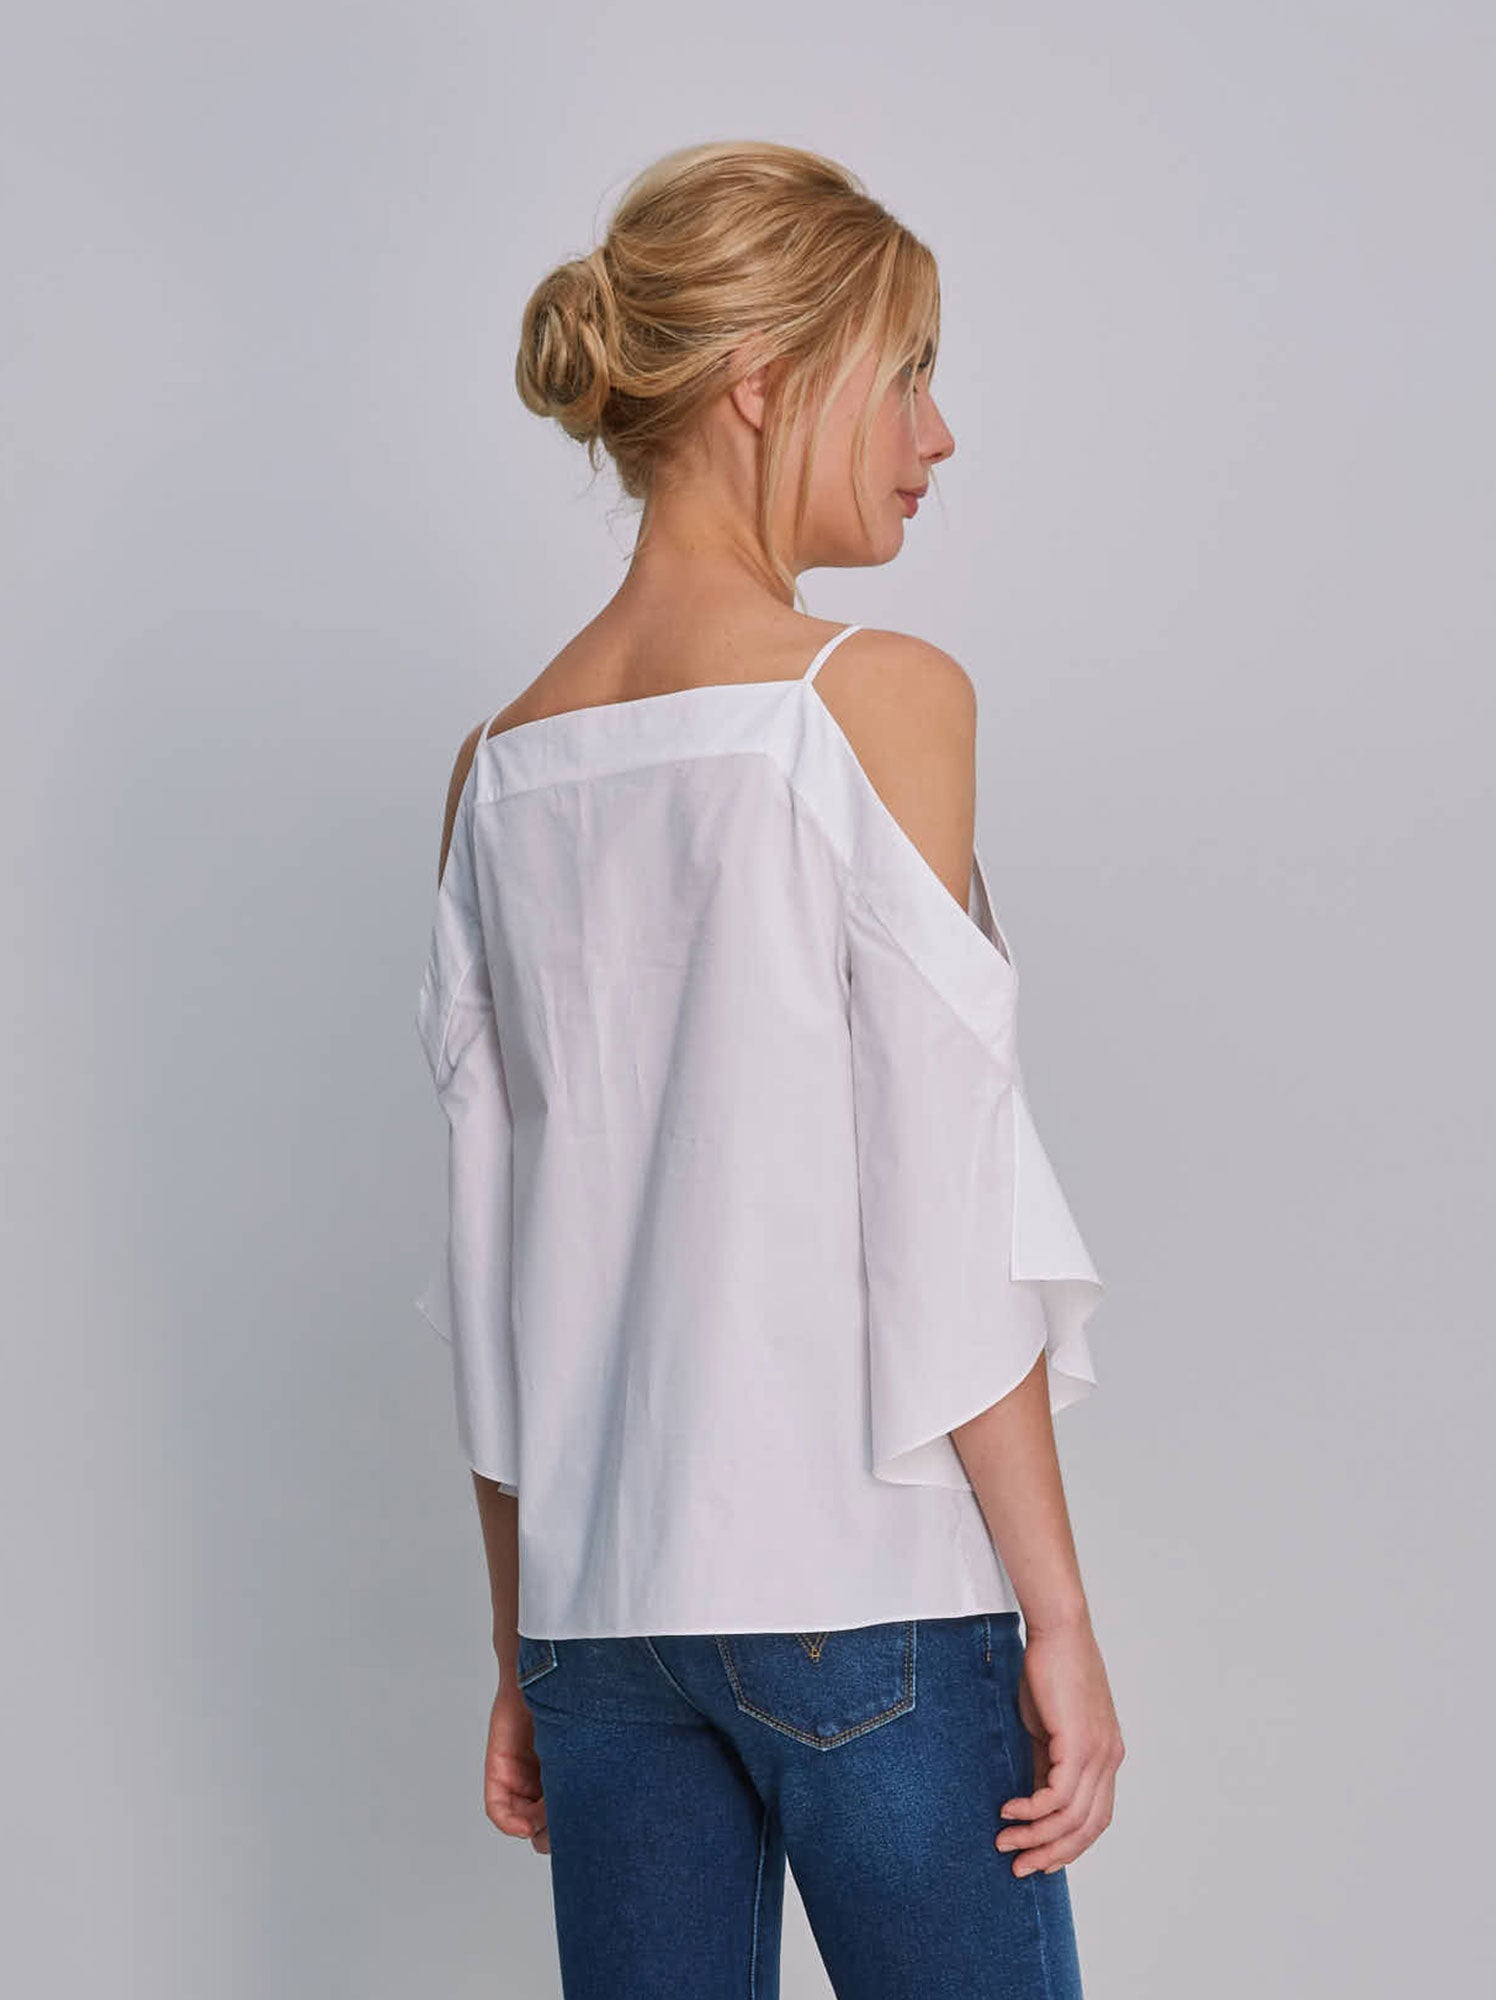 Alice & Trixie White Cotton Sosie Top back view